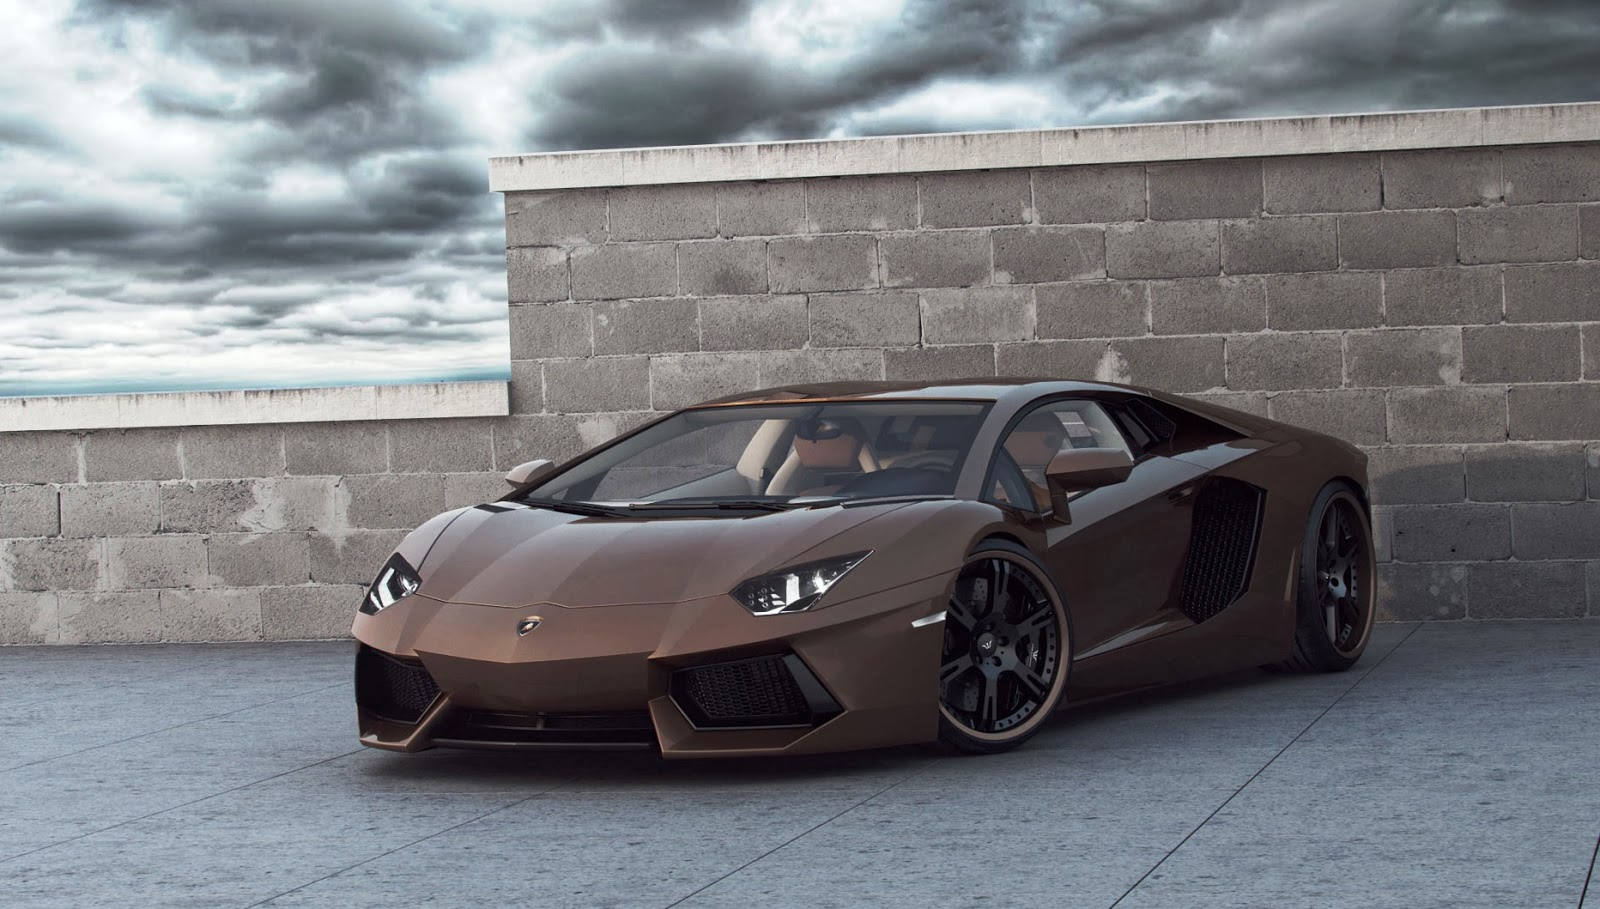 Top 5 Most Expensive Cars In The World Mechanical Booster